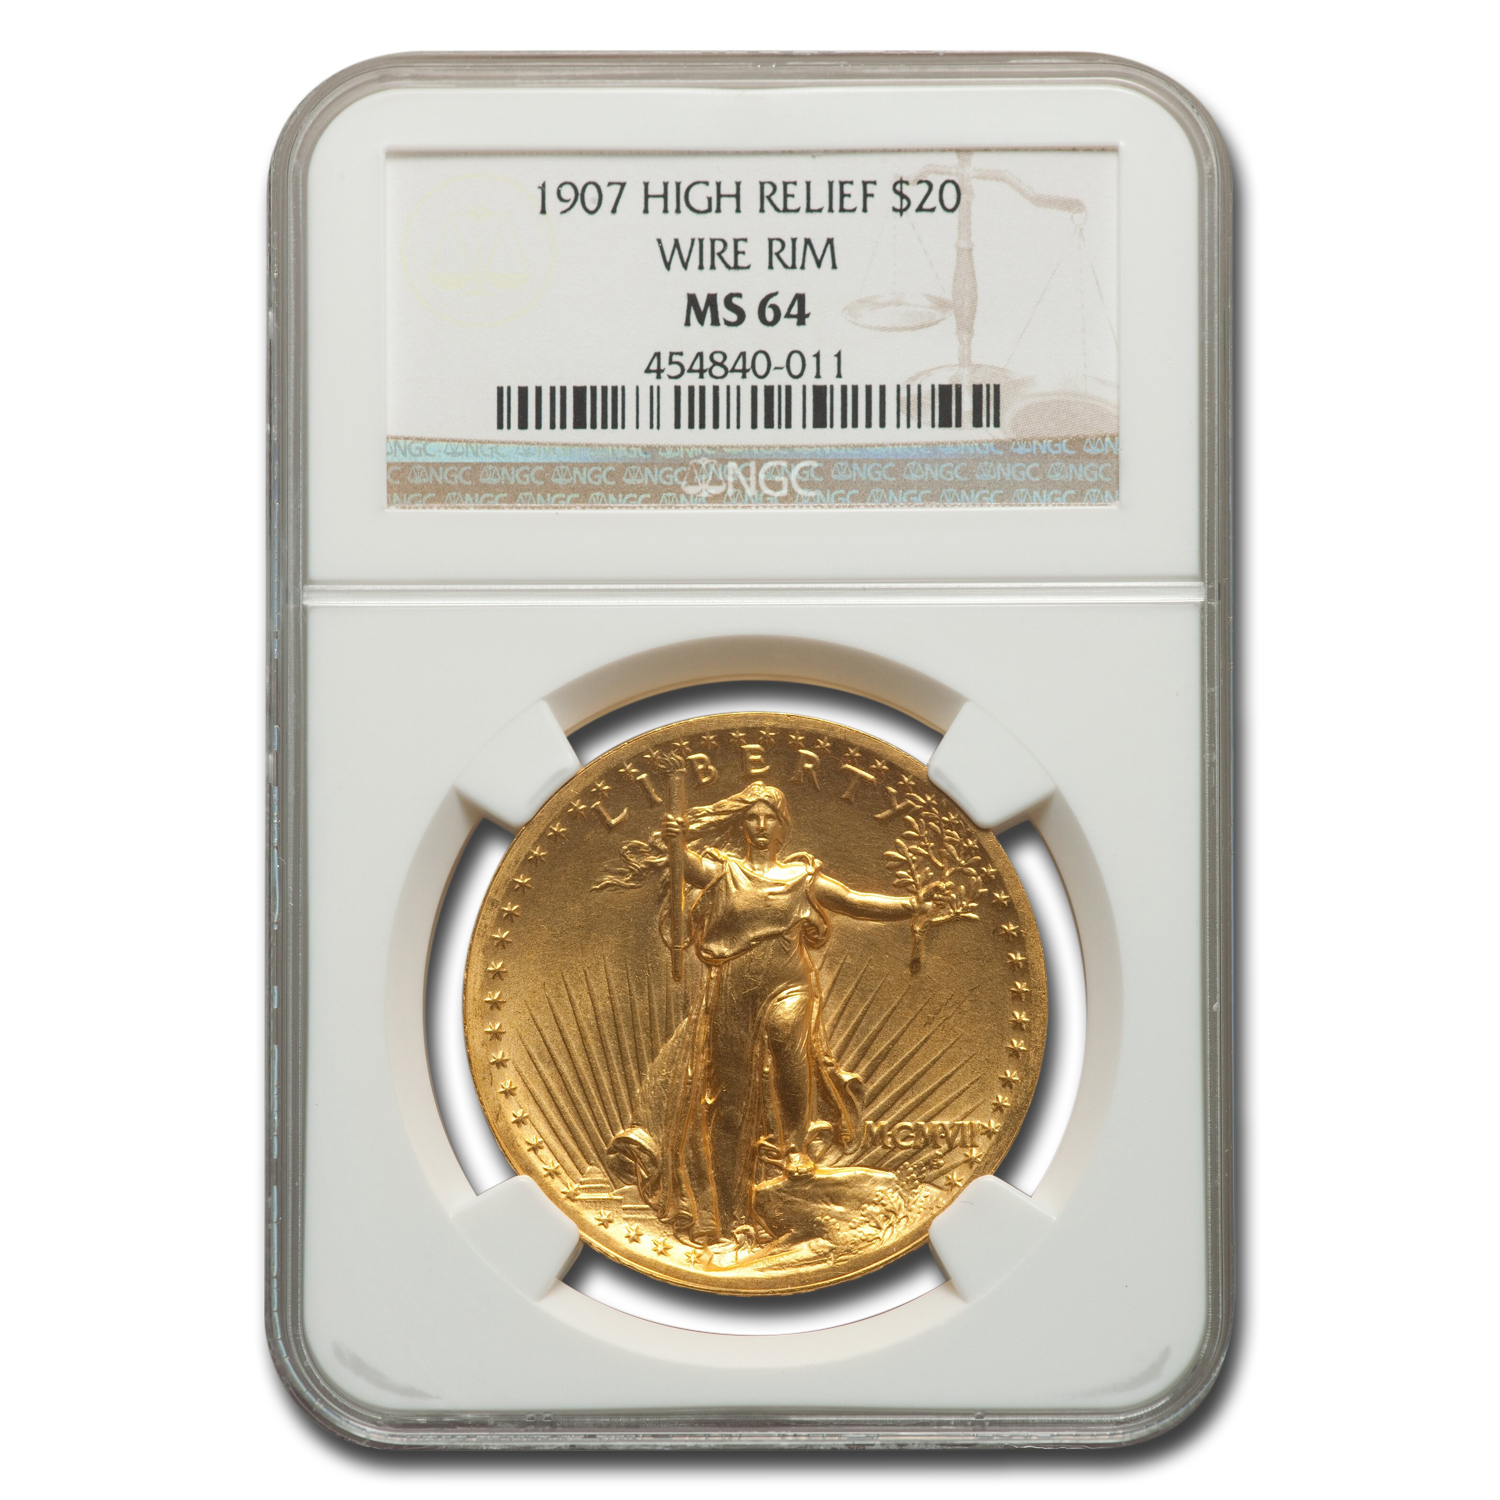 1907 $20 St. Gaudens Gold High Relief Wire Rim MS-64 NGC